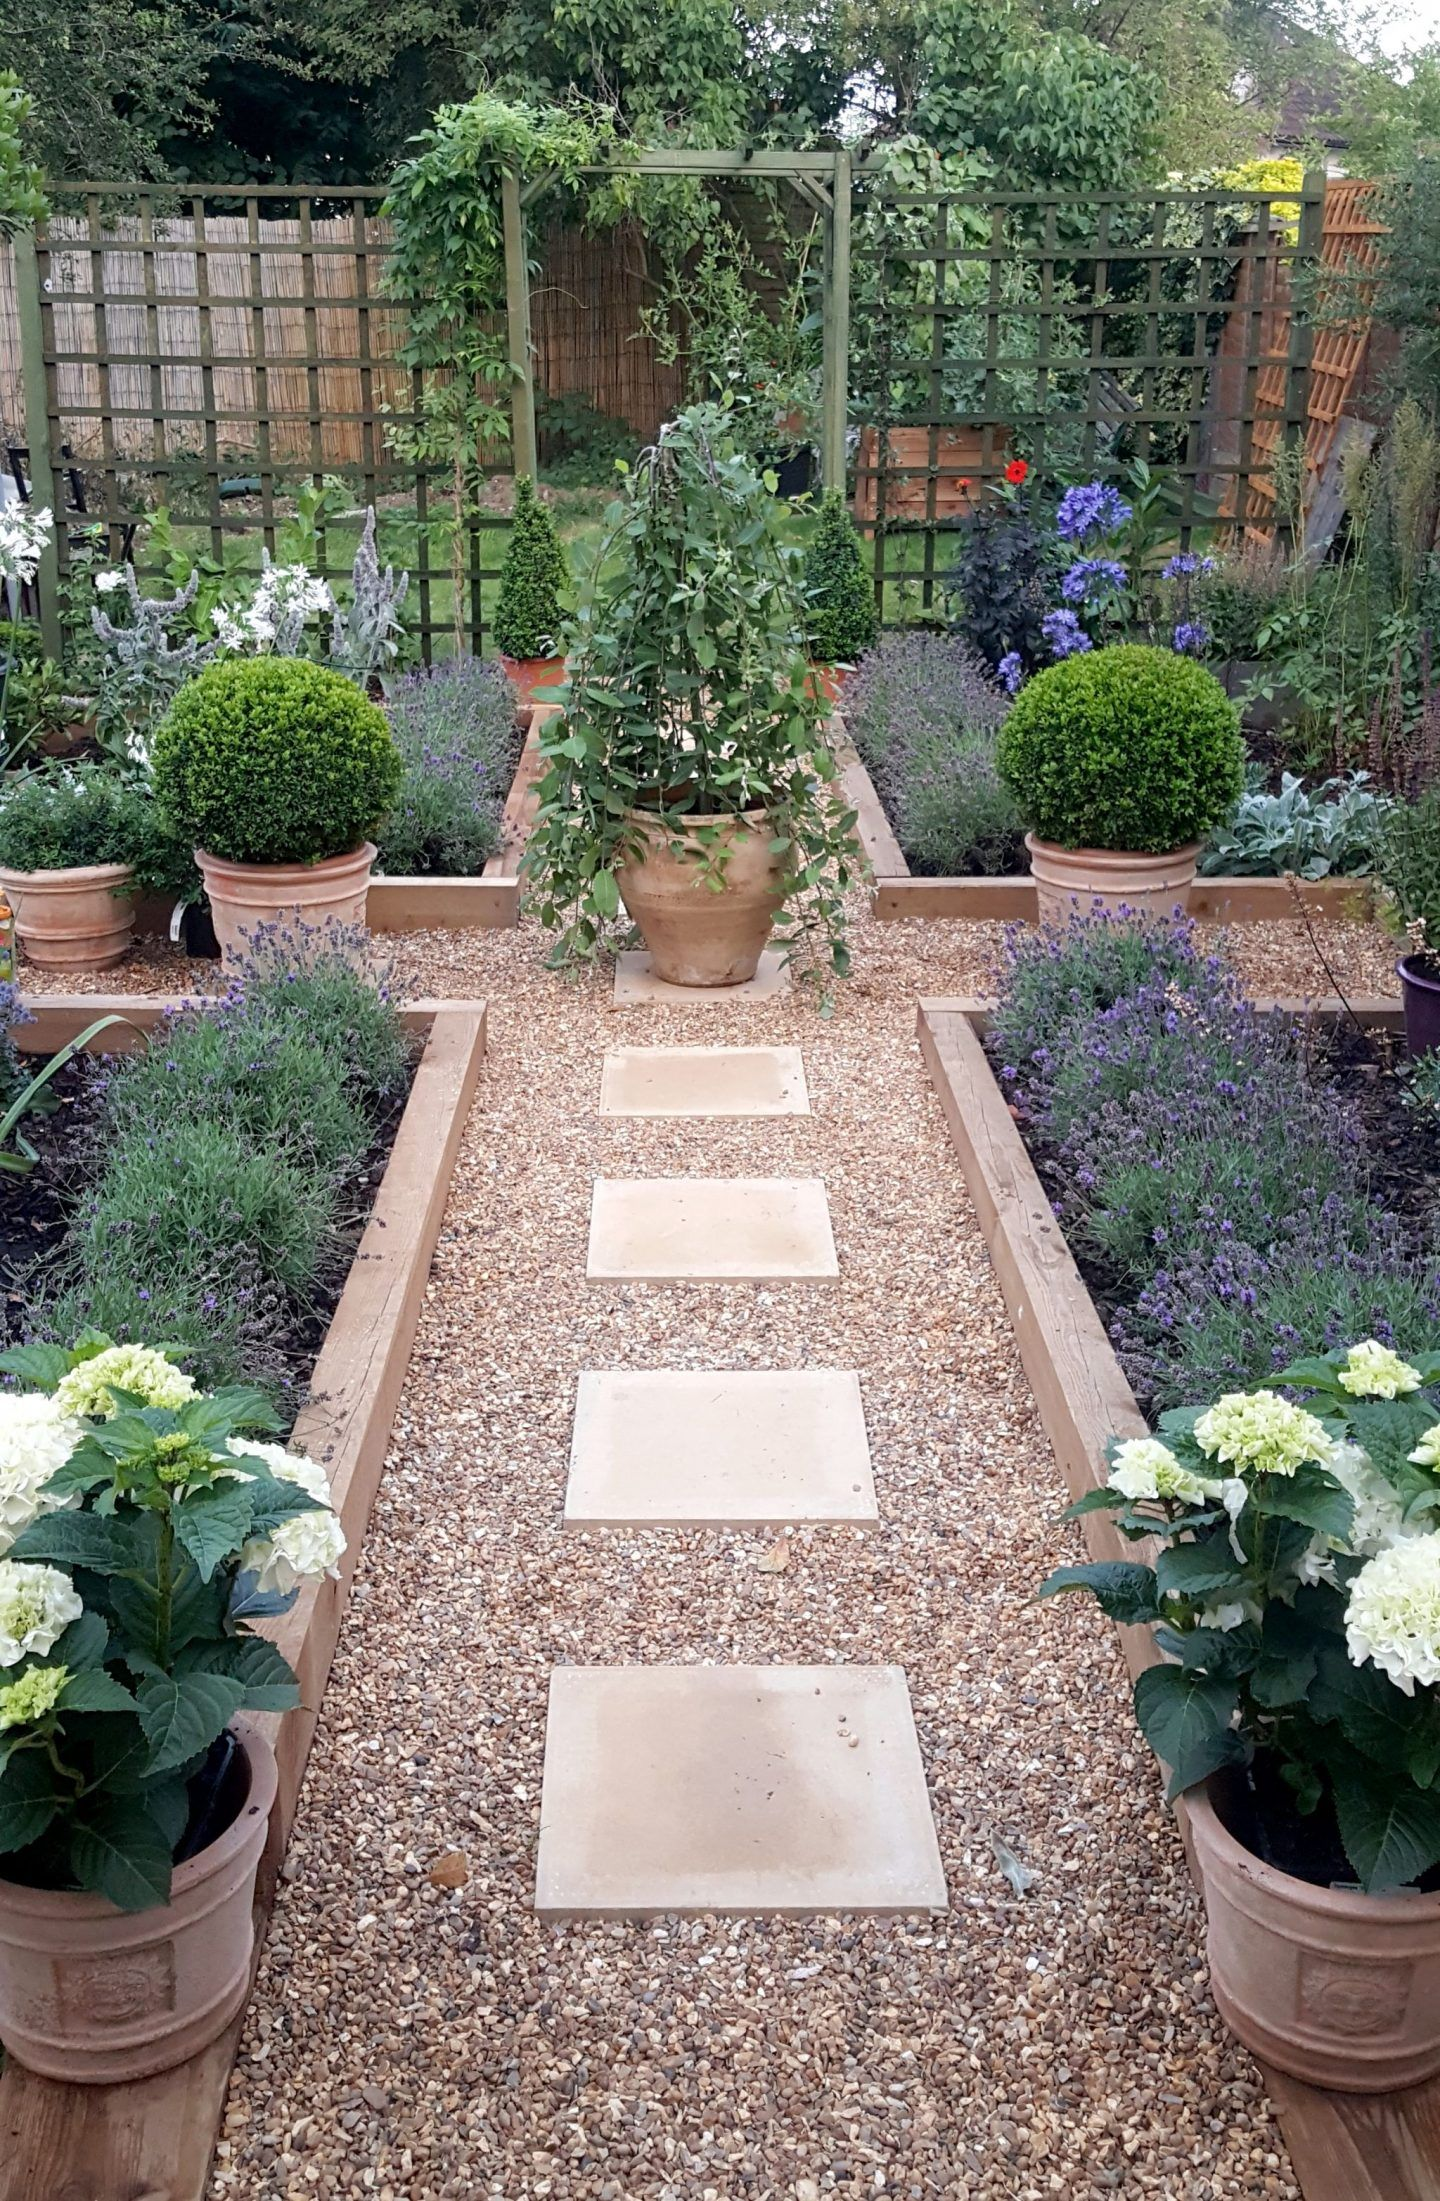 Improve the look of your garden (With images) Herb